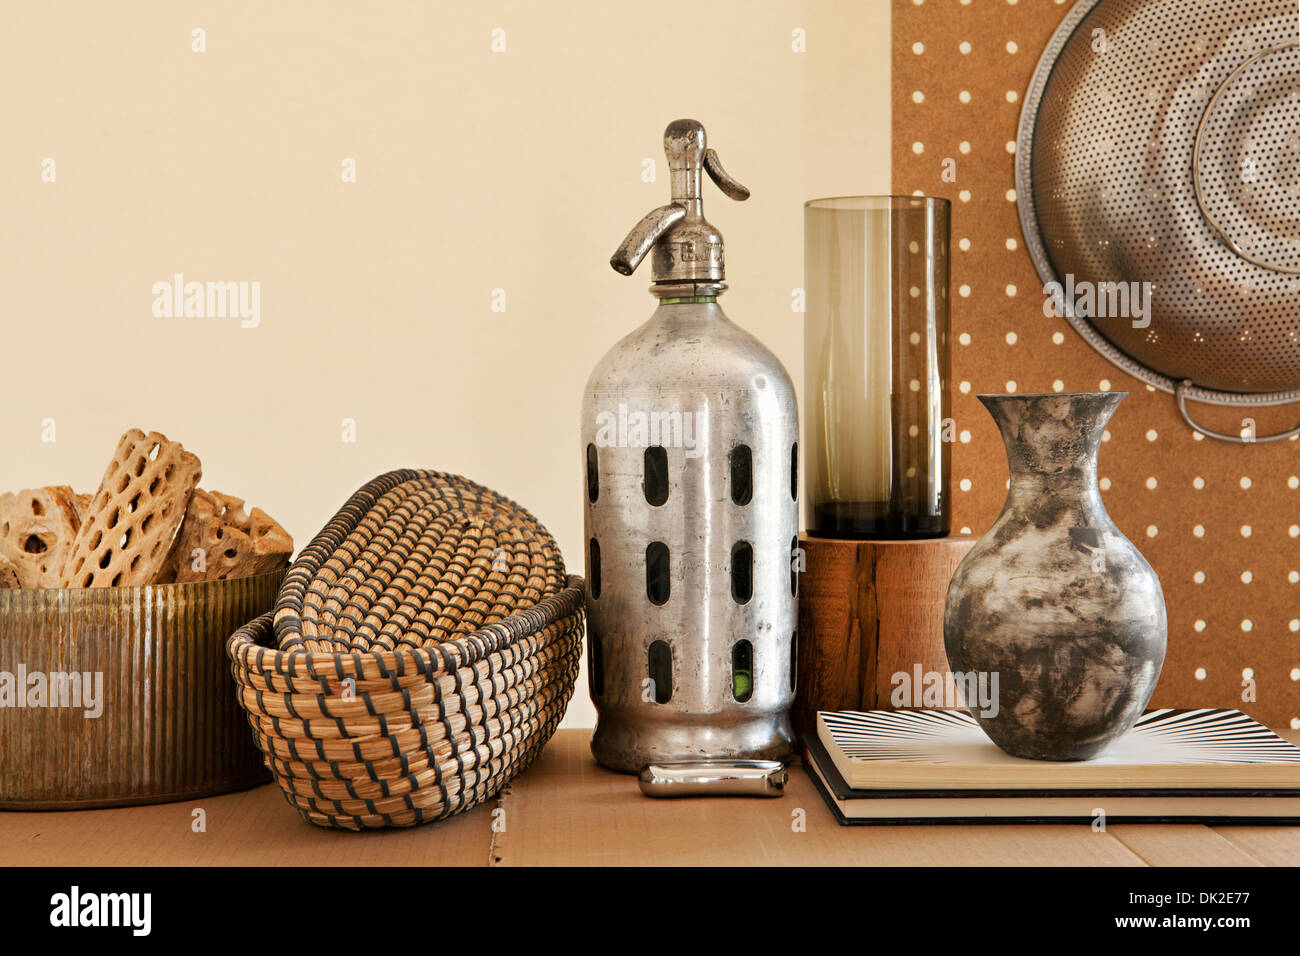 Seltzer, vase and variety of kitchen objects - Stock Image